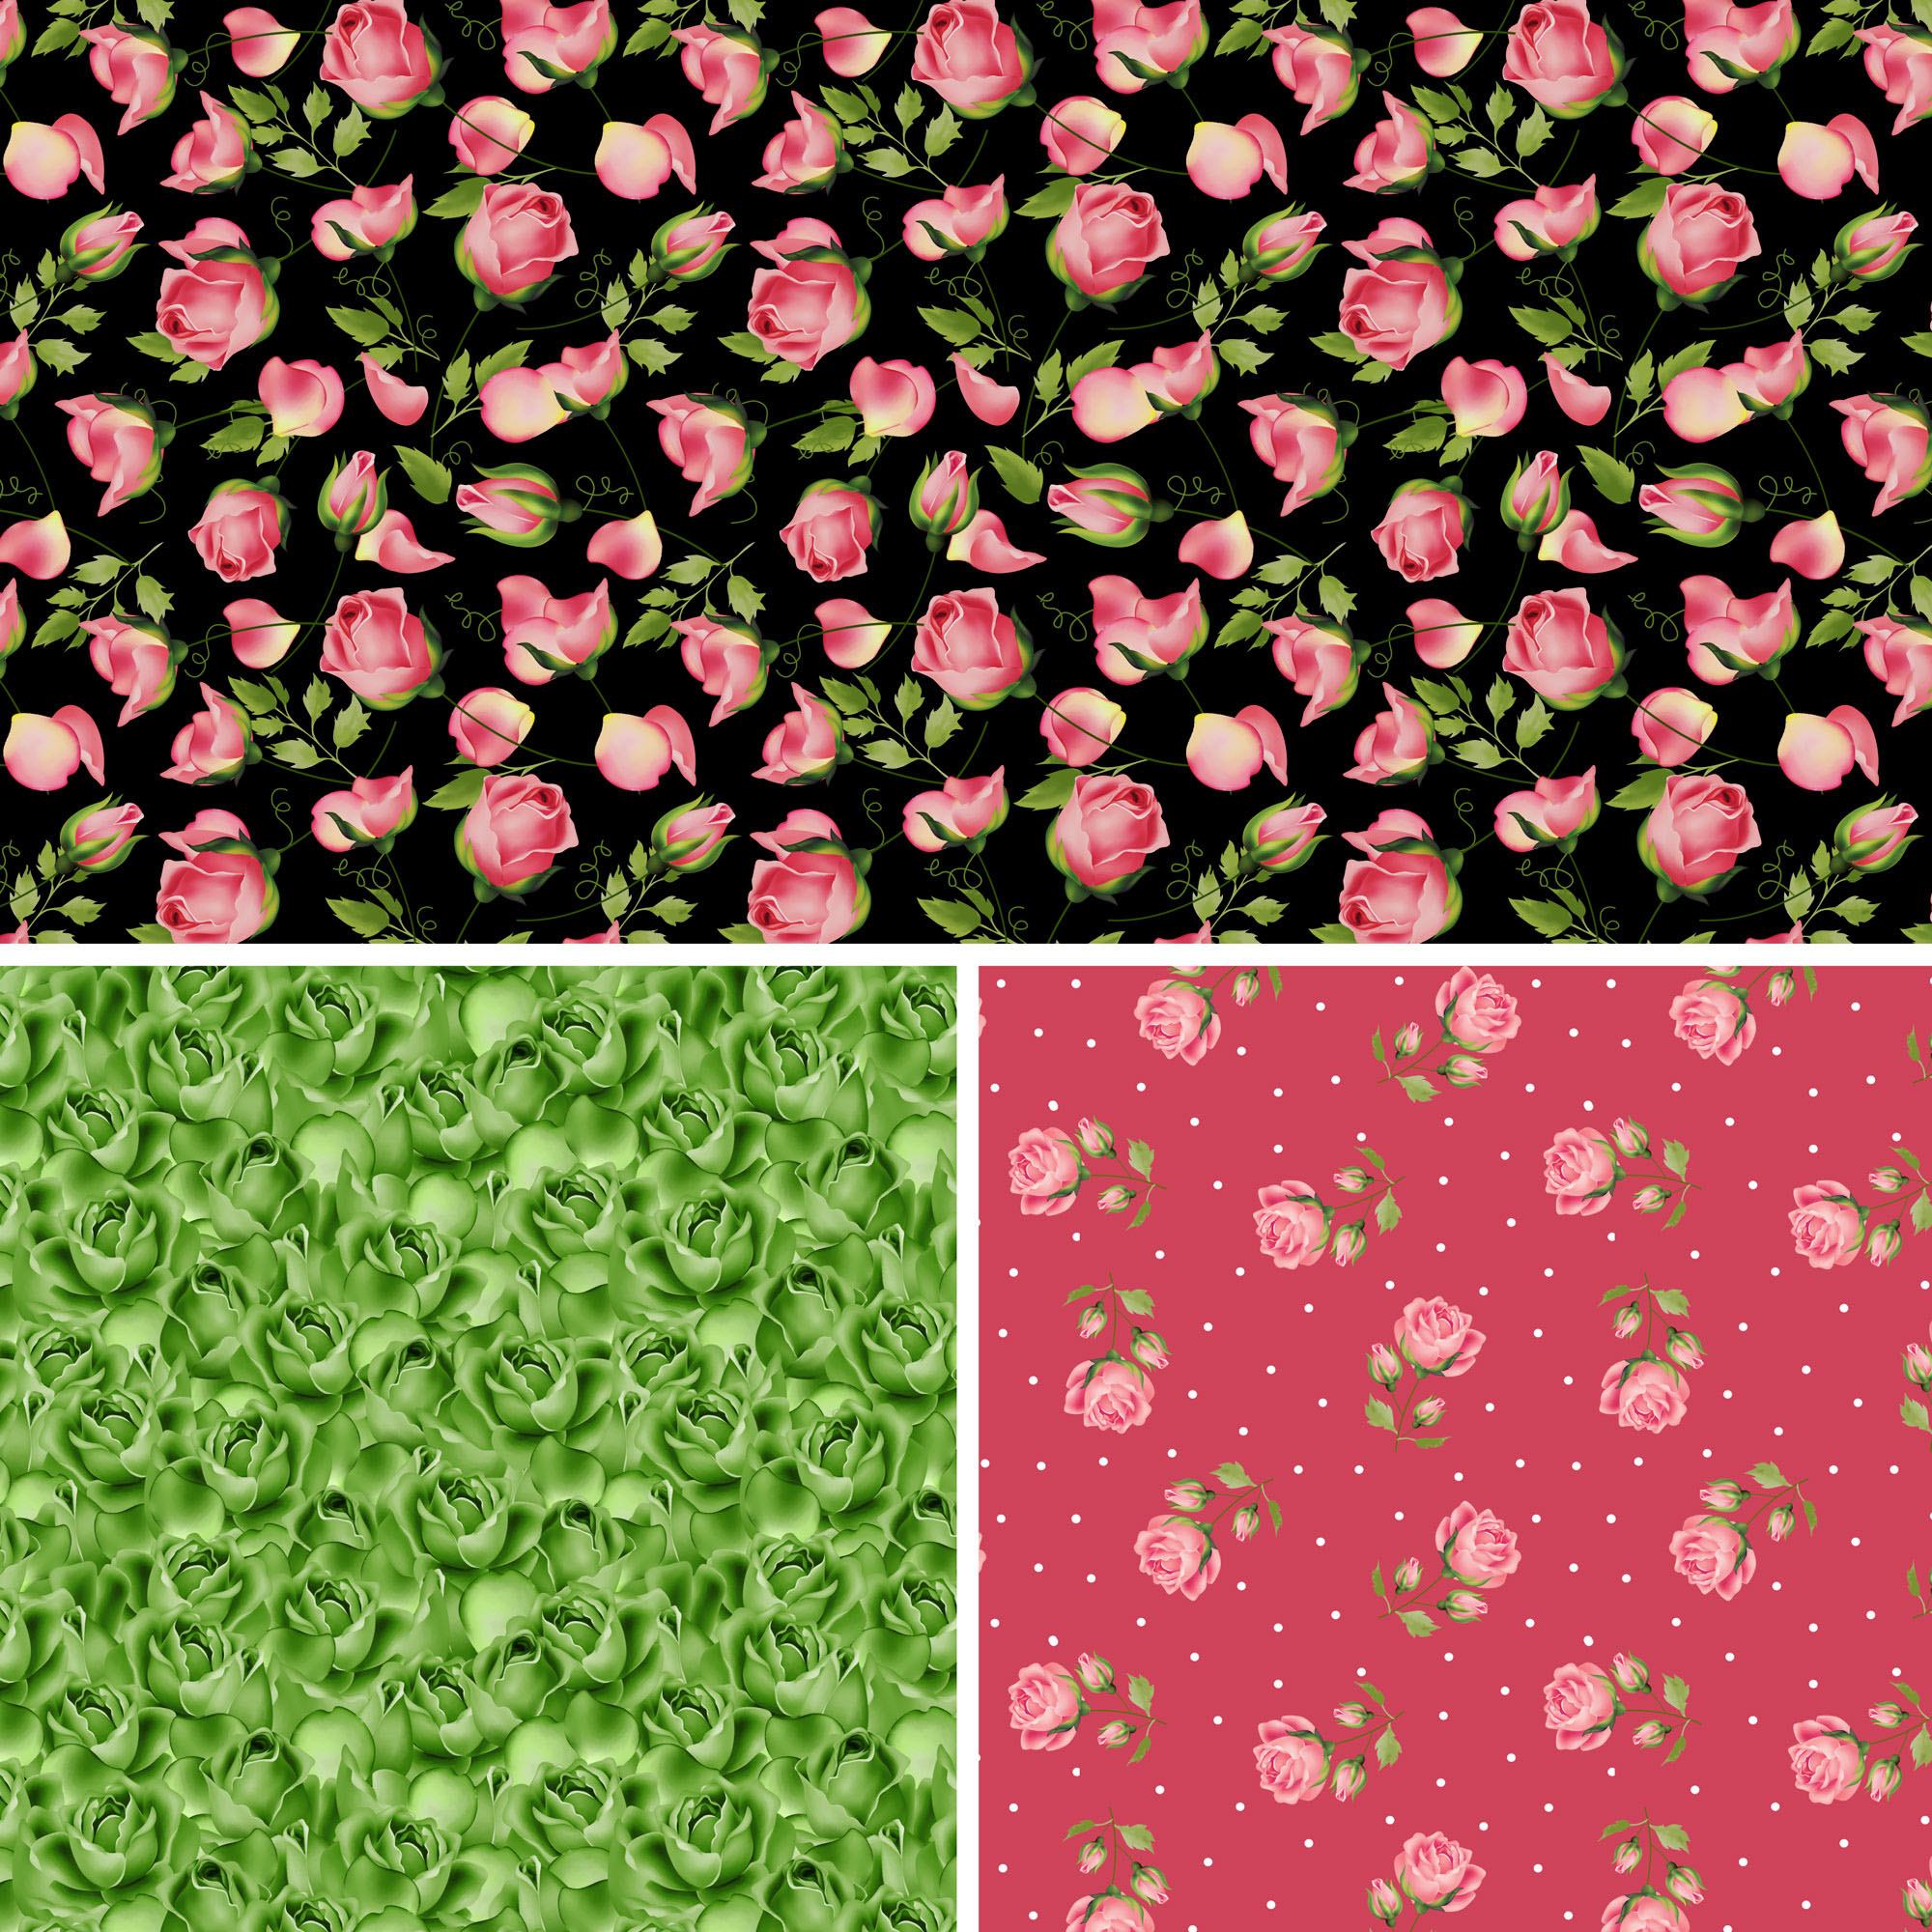 David Textiles Cotton Precut Fabric Wild Rose Collection 1 Yd X 44 Inches